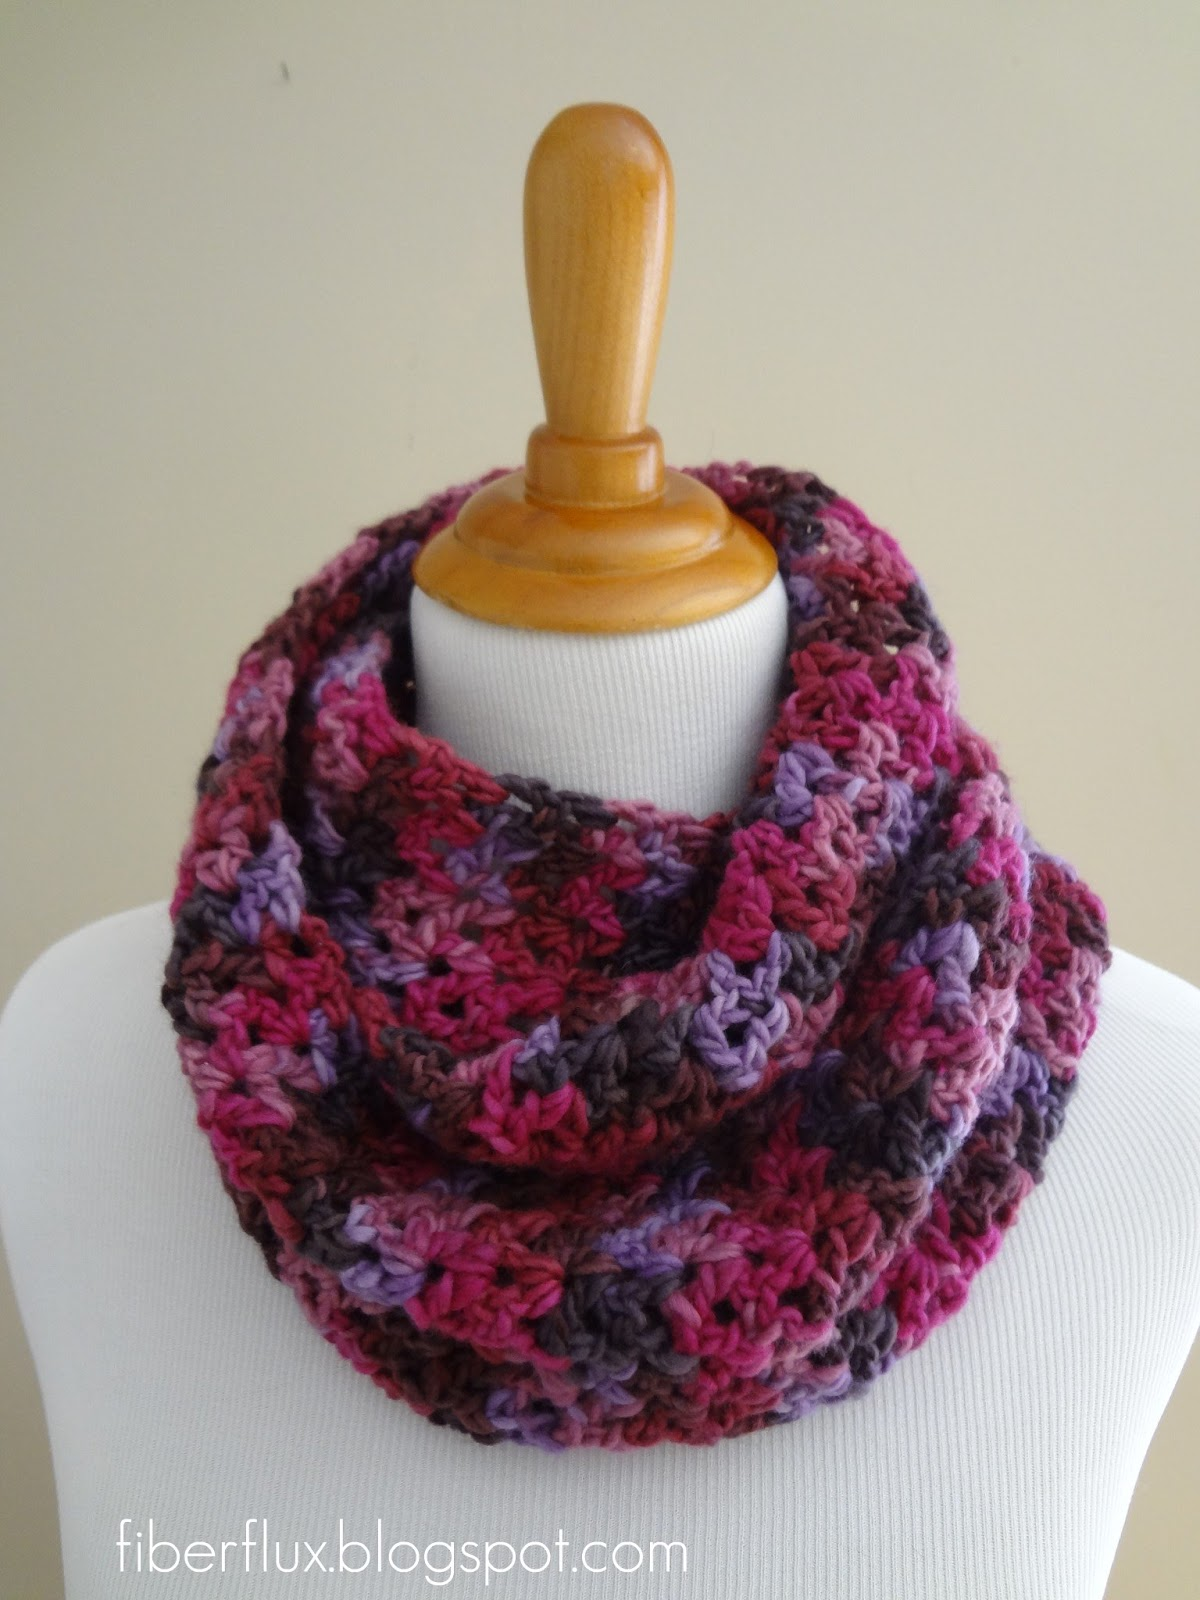 Crocheting Ends Of Infinity Scarf Together : Fiber Flux: Free Crochet Pattern...Gelato Infinity Scarf